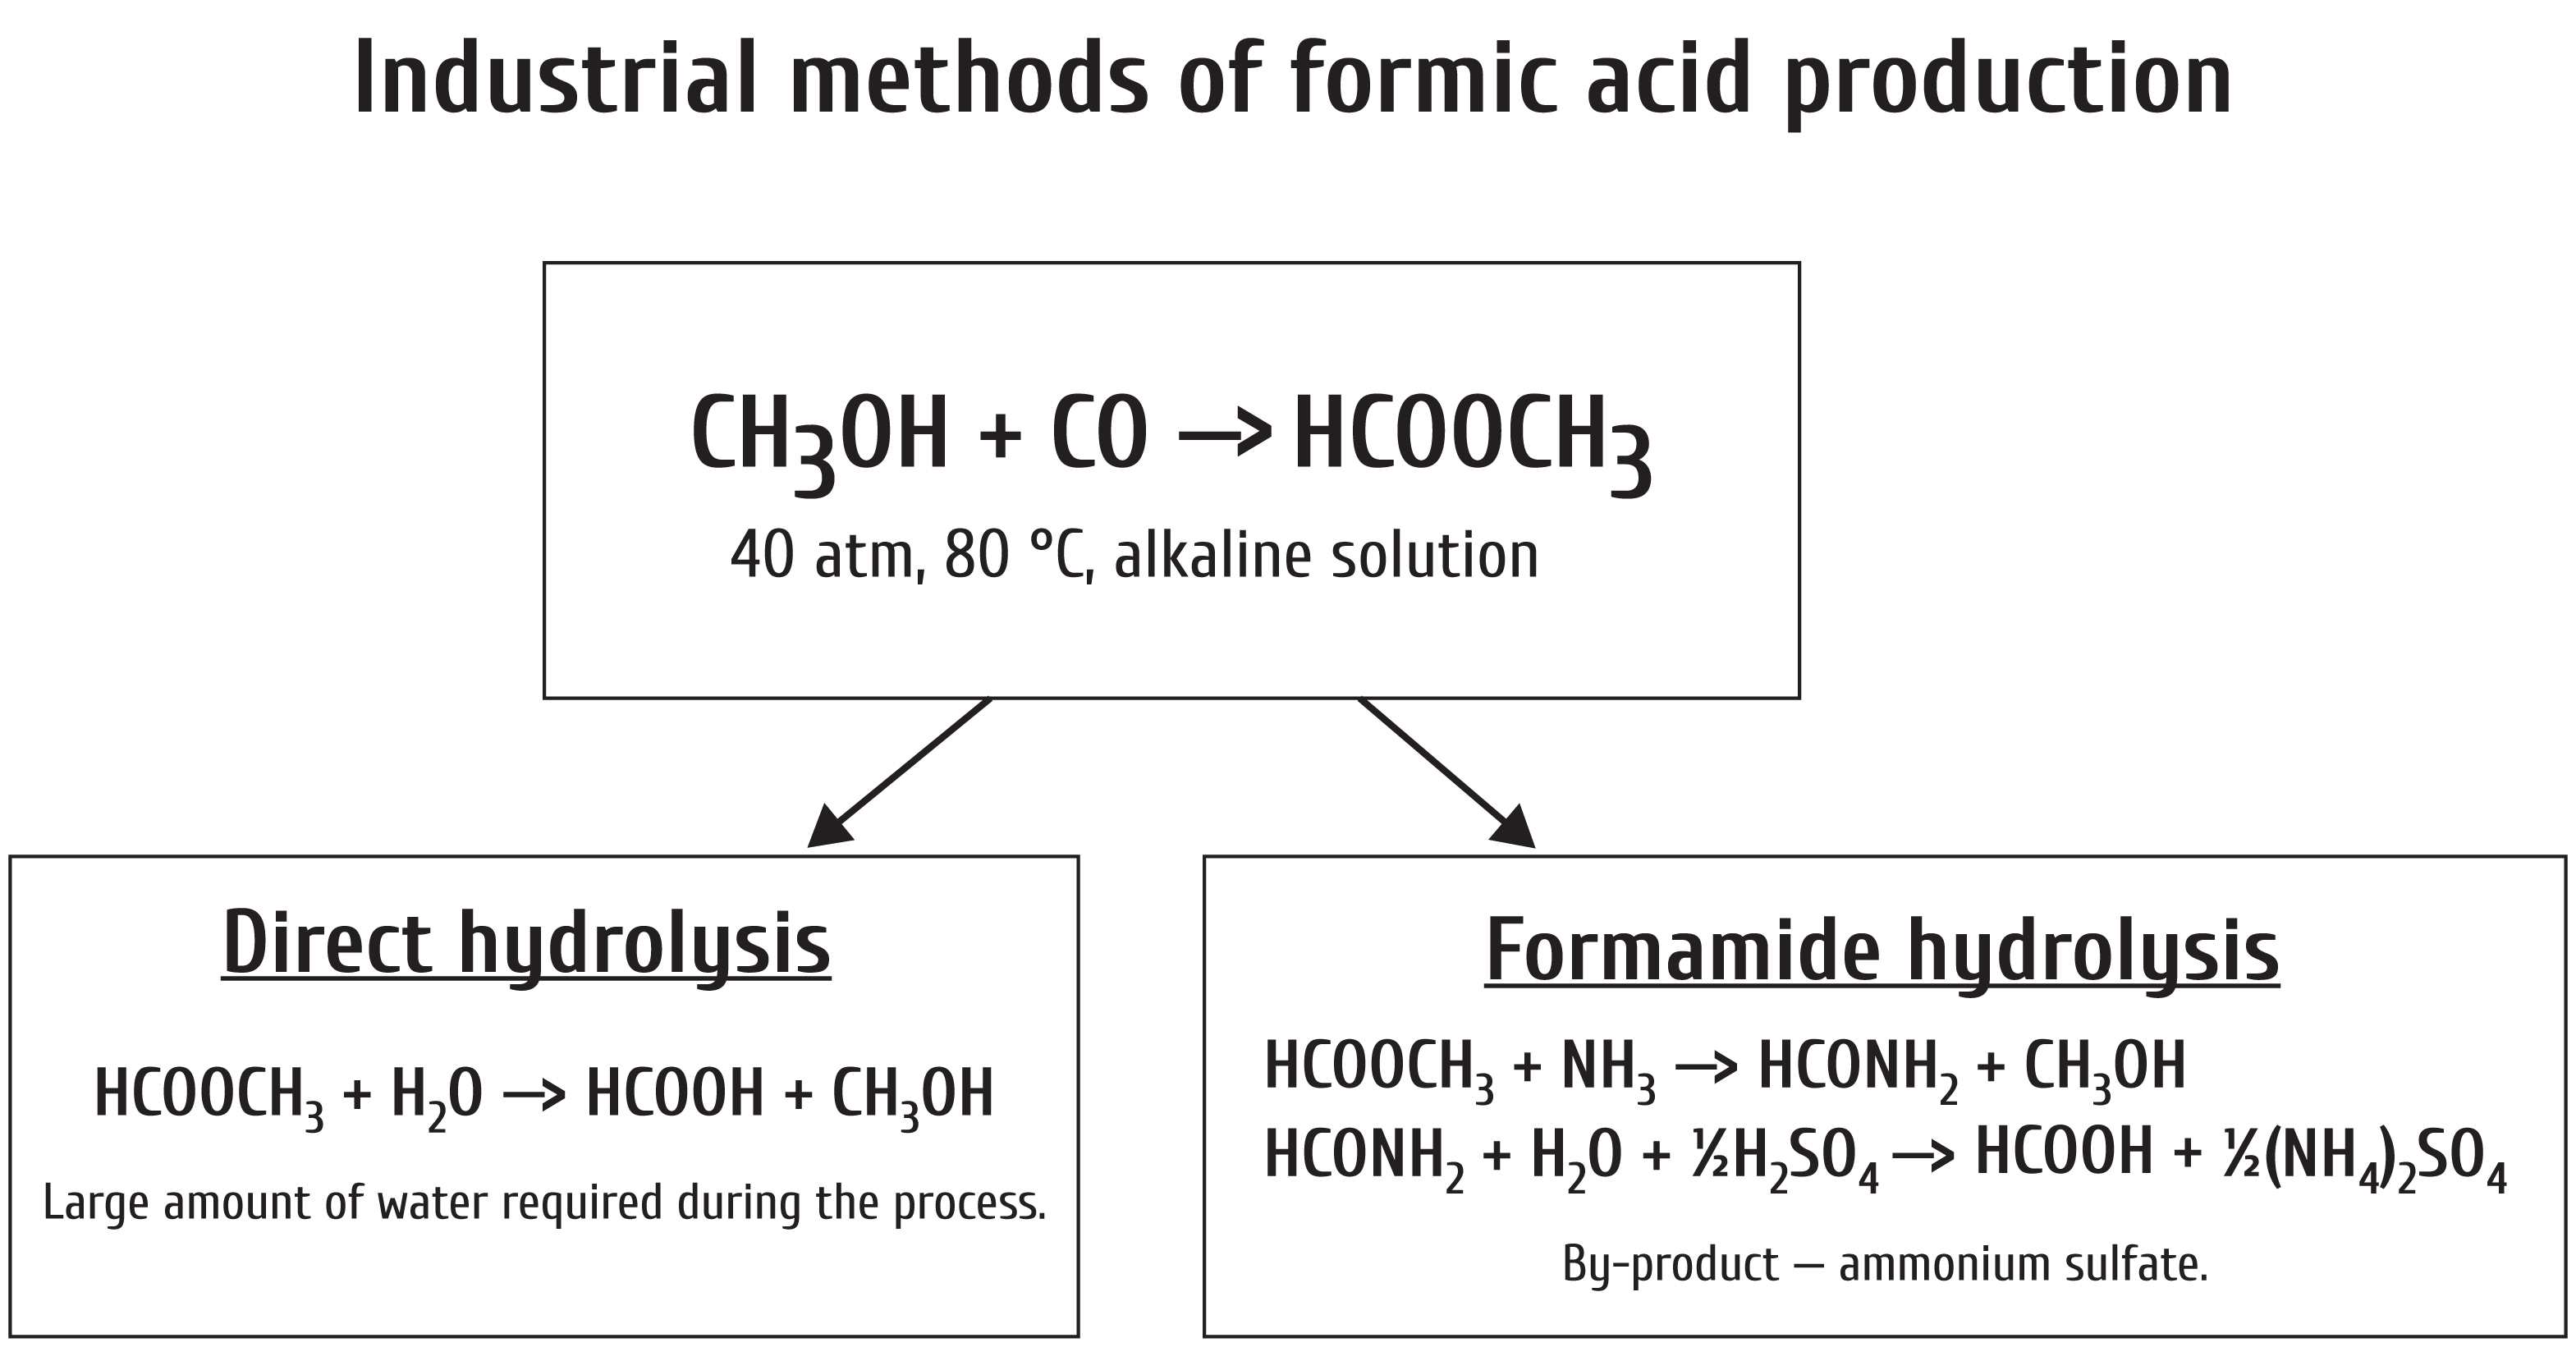 Safe Technologies Industrial Group Formic Acid Production Facilities